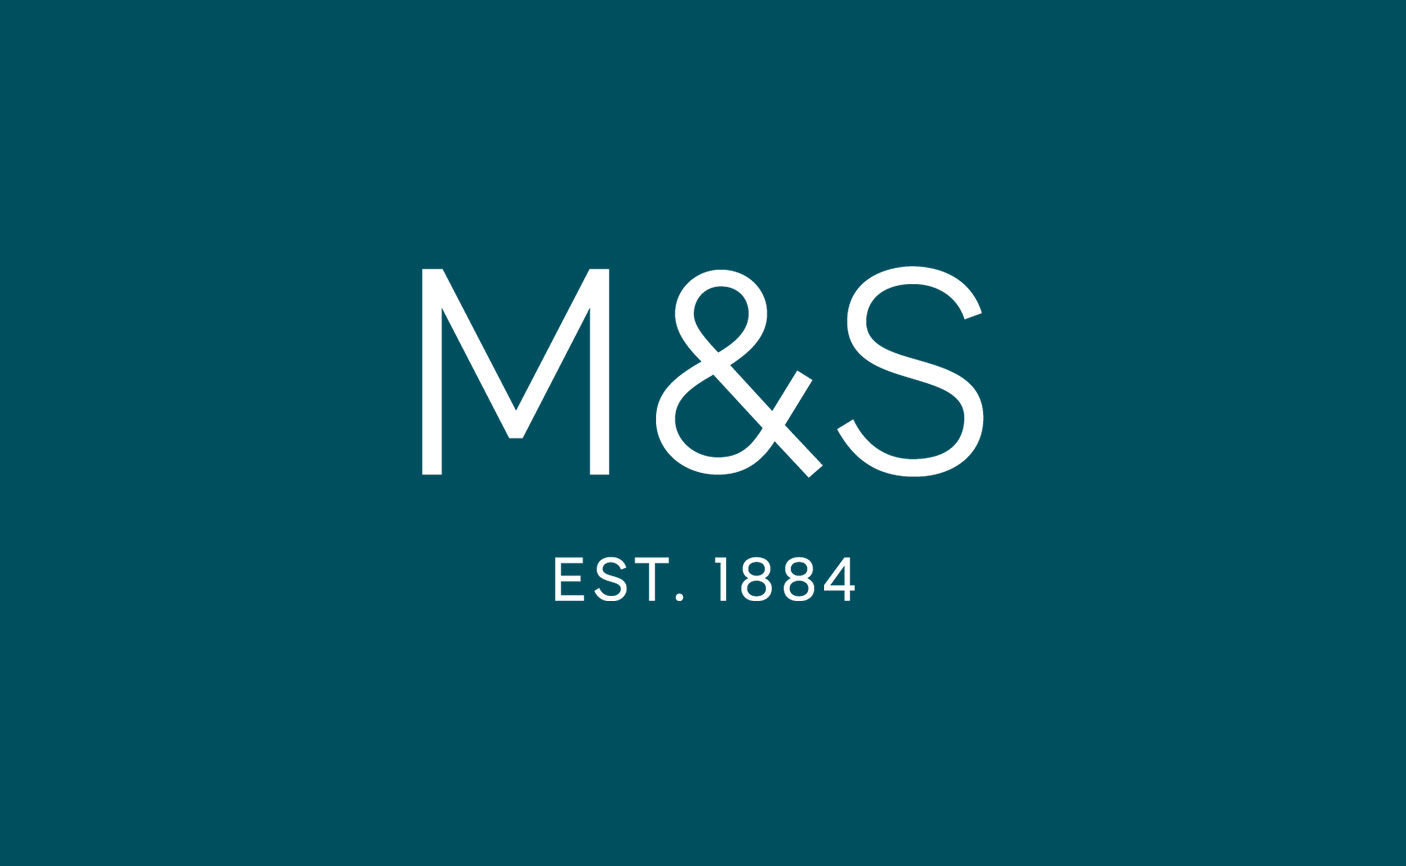 Marks & Spencer - customer testimonial and customer reference